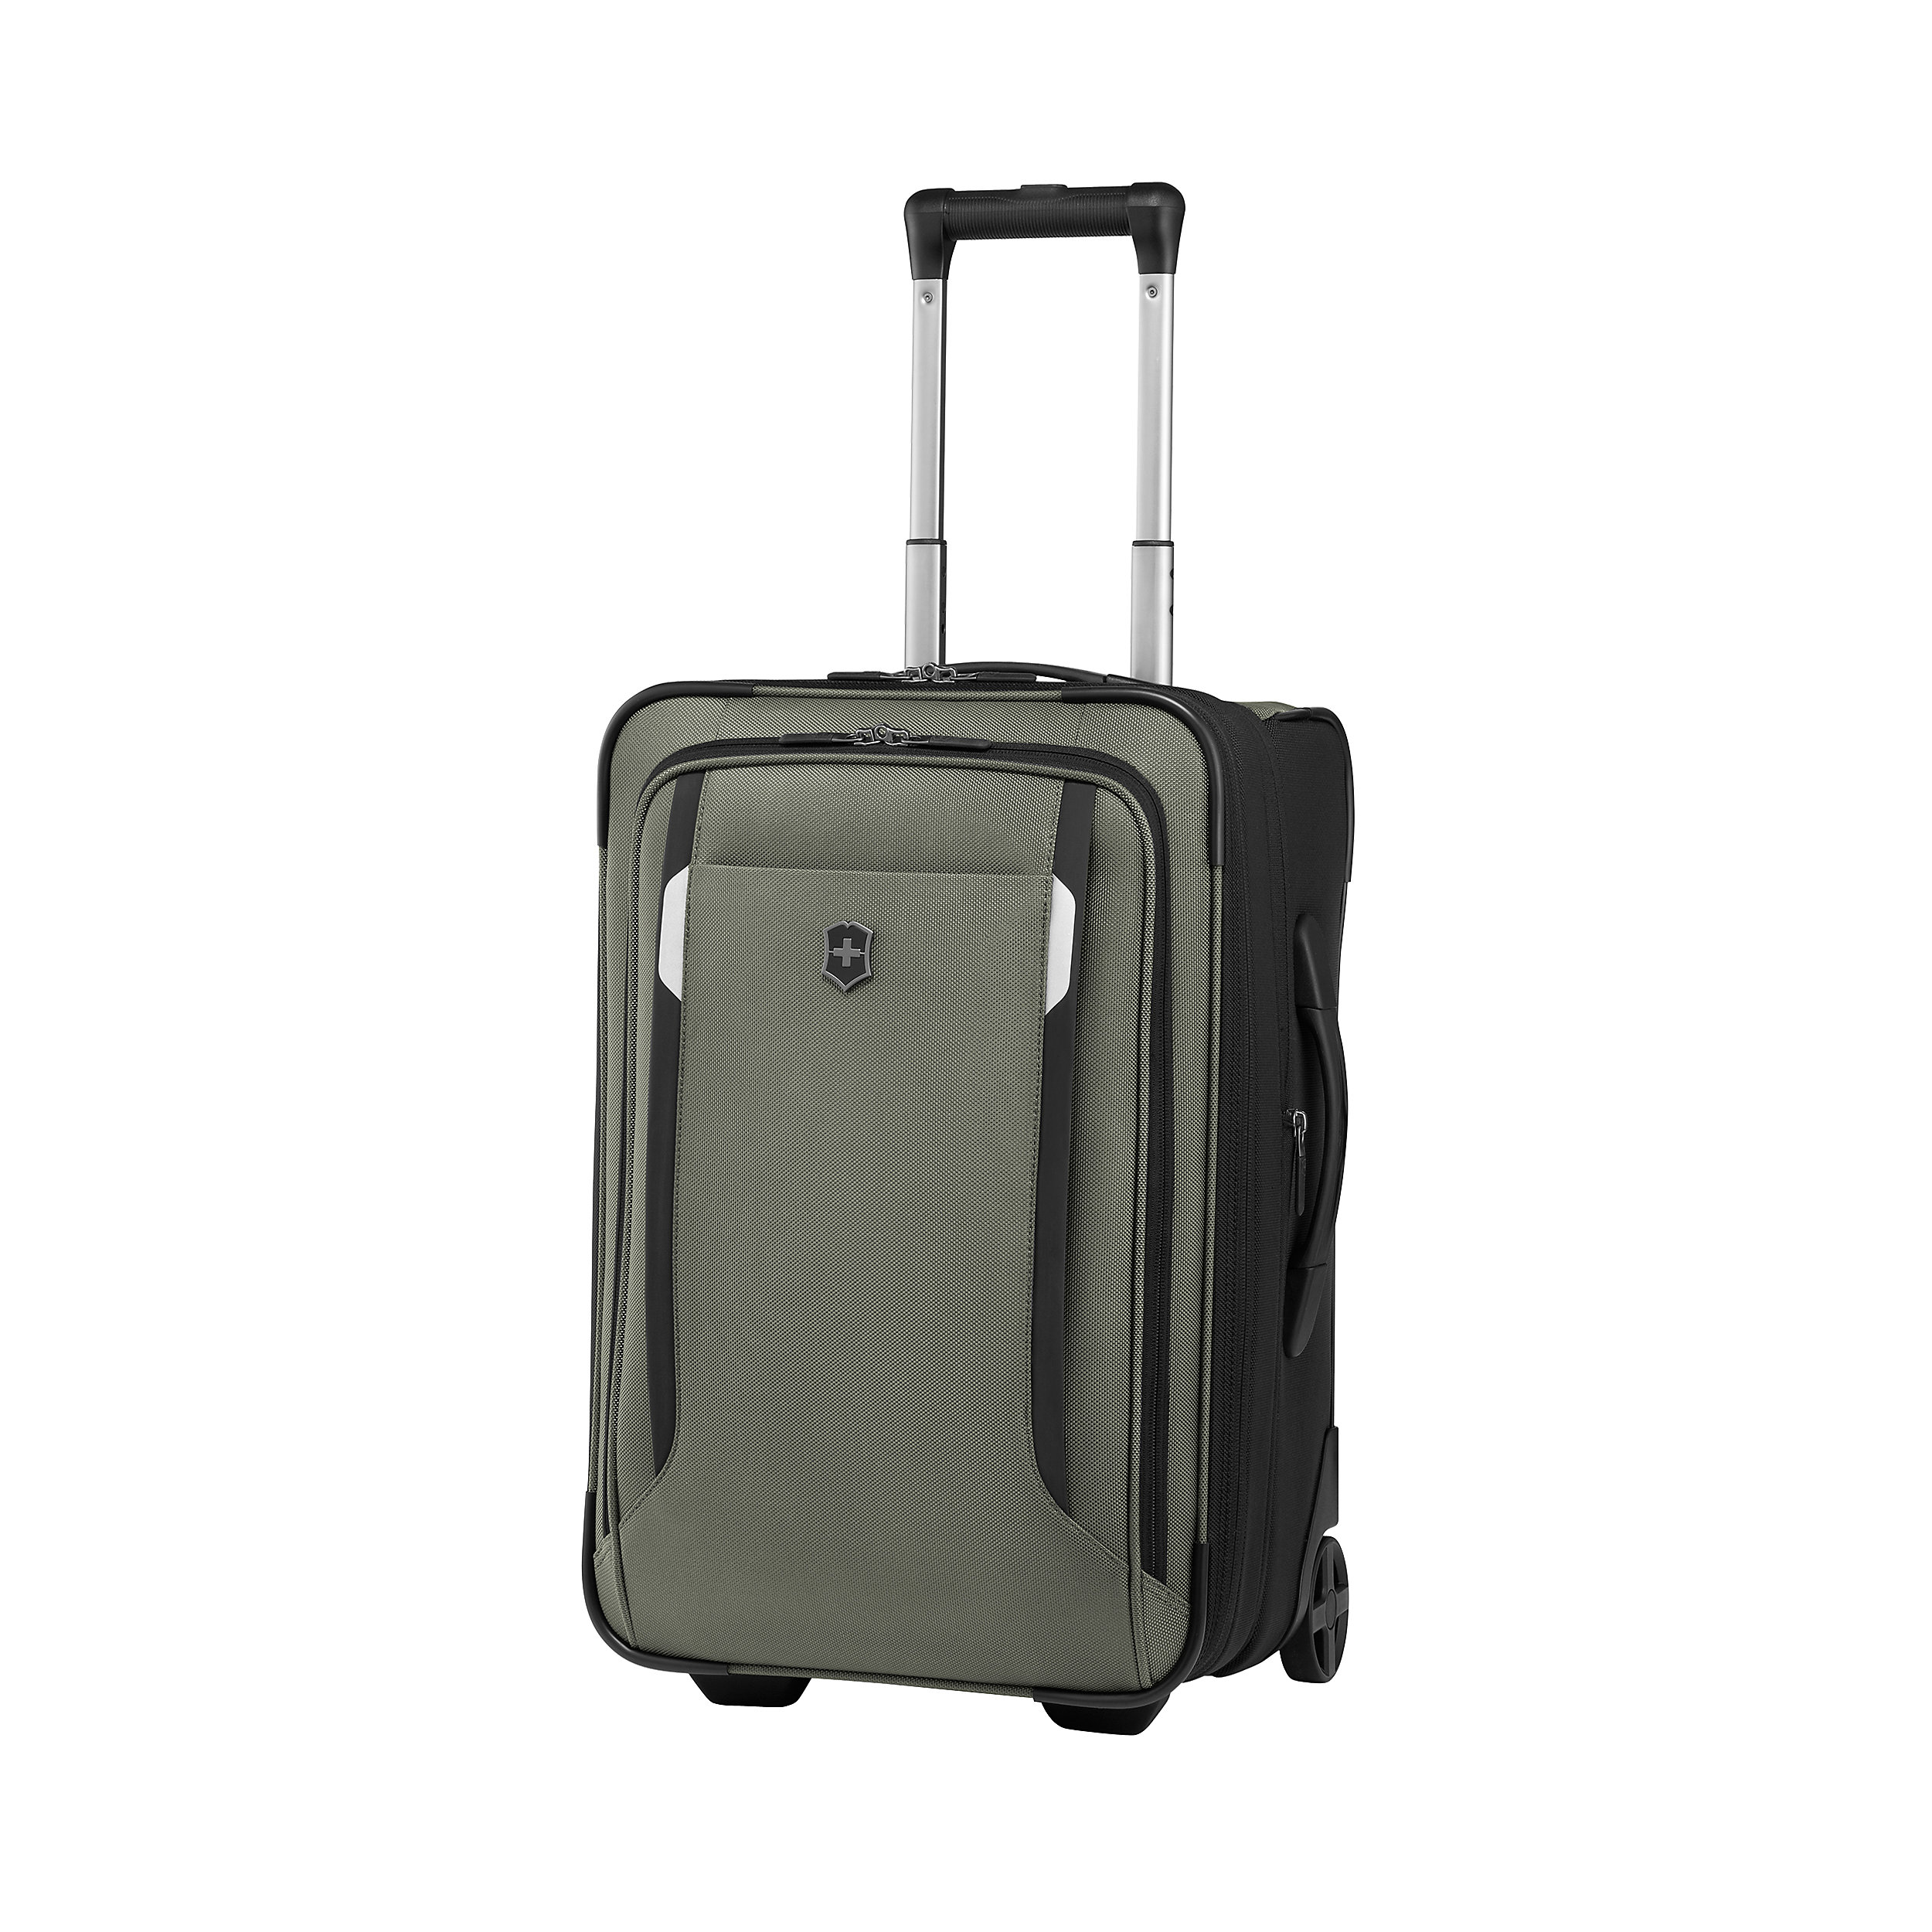 Carry-on Trolley with 2 wheels 55cm EU-Asia EXP Werks Traveler 5.0 S 32 Liter